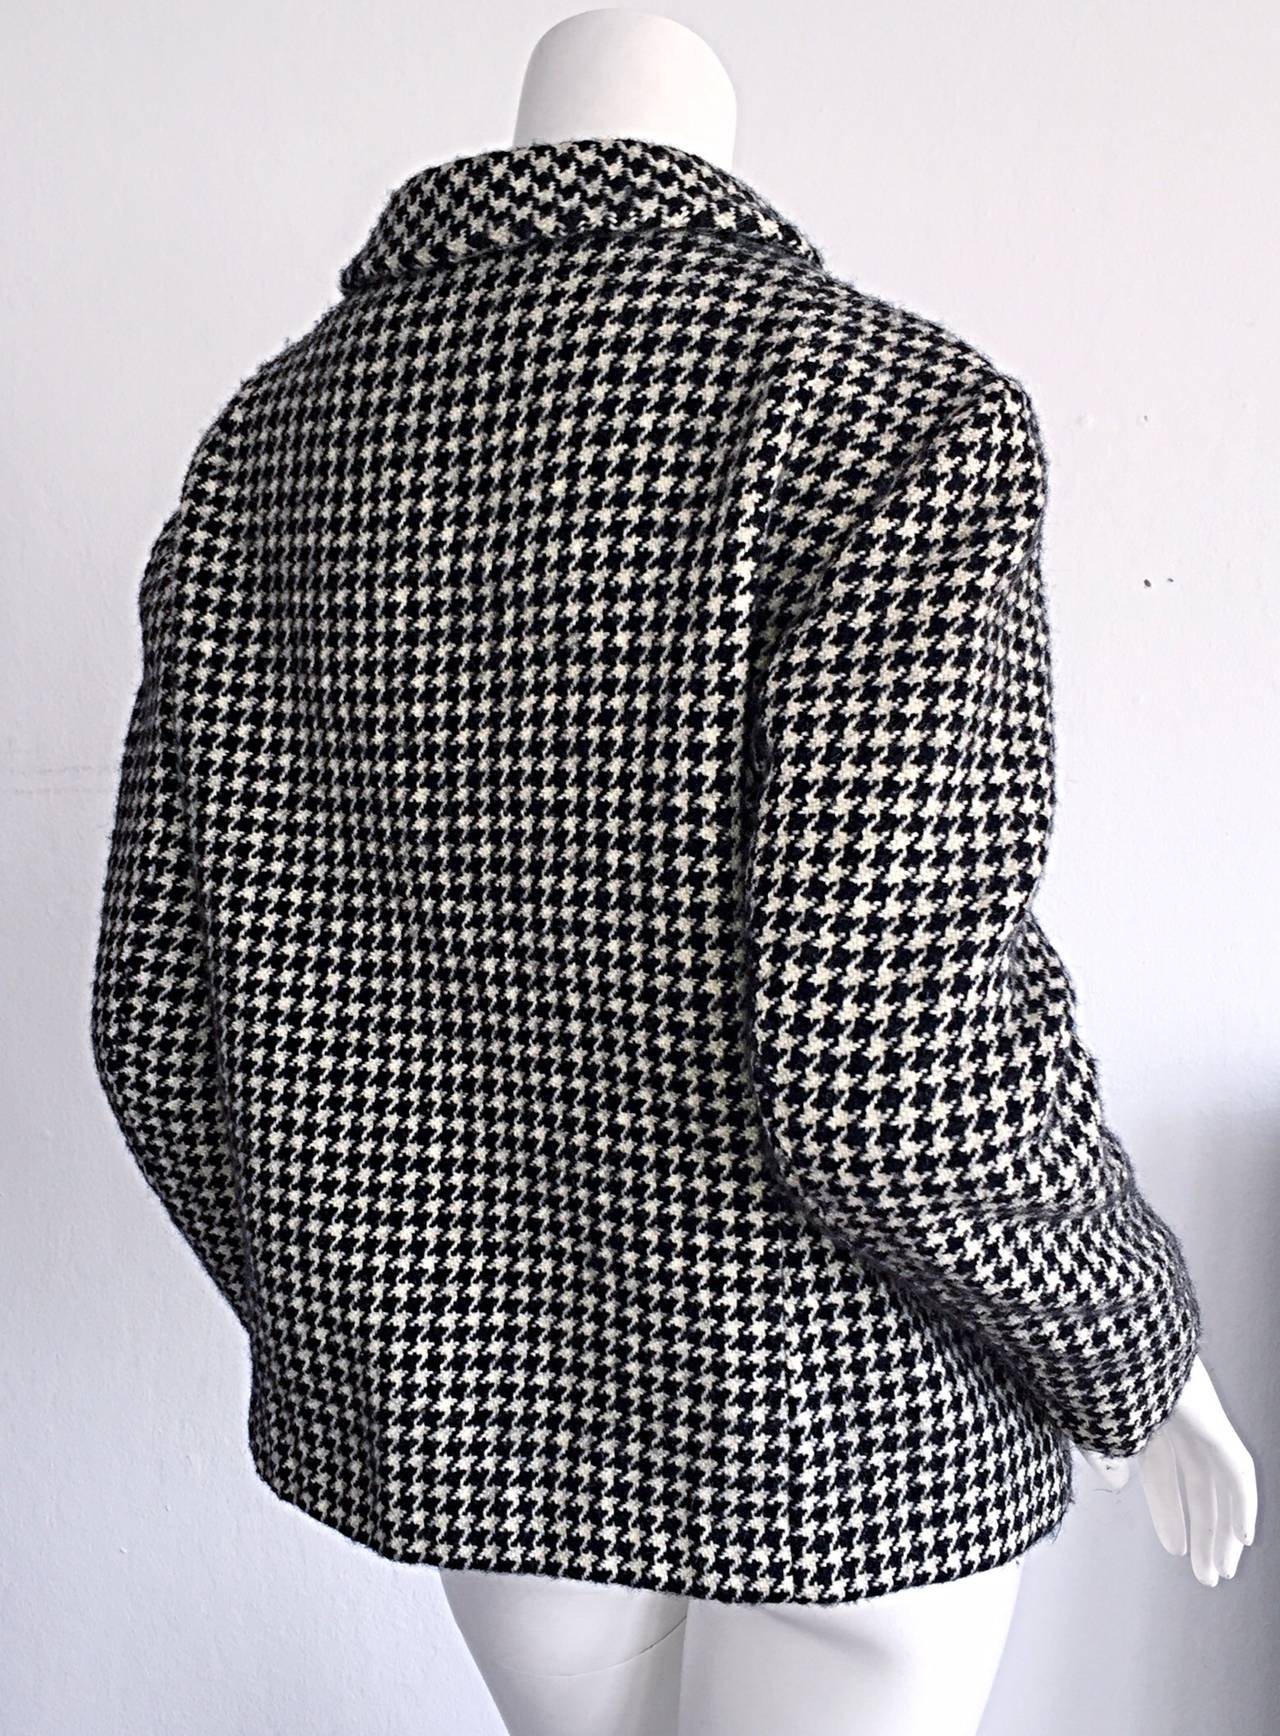 1960s Pierre Cardin Black + White Houndstooth Space Age Jacket For Sale 2